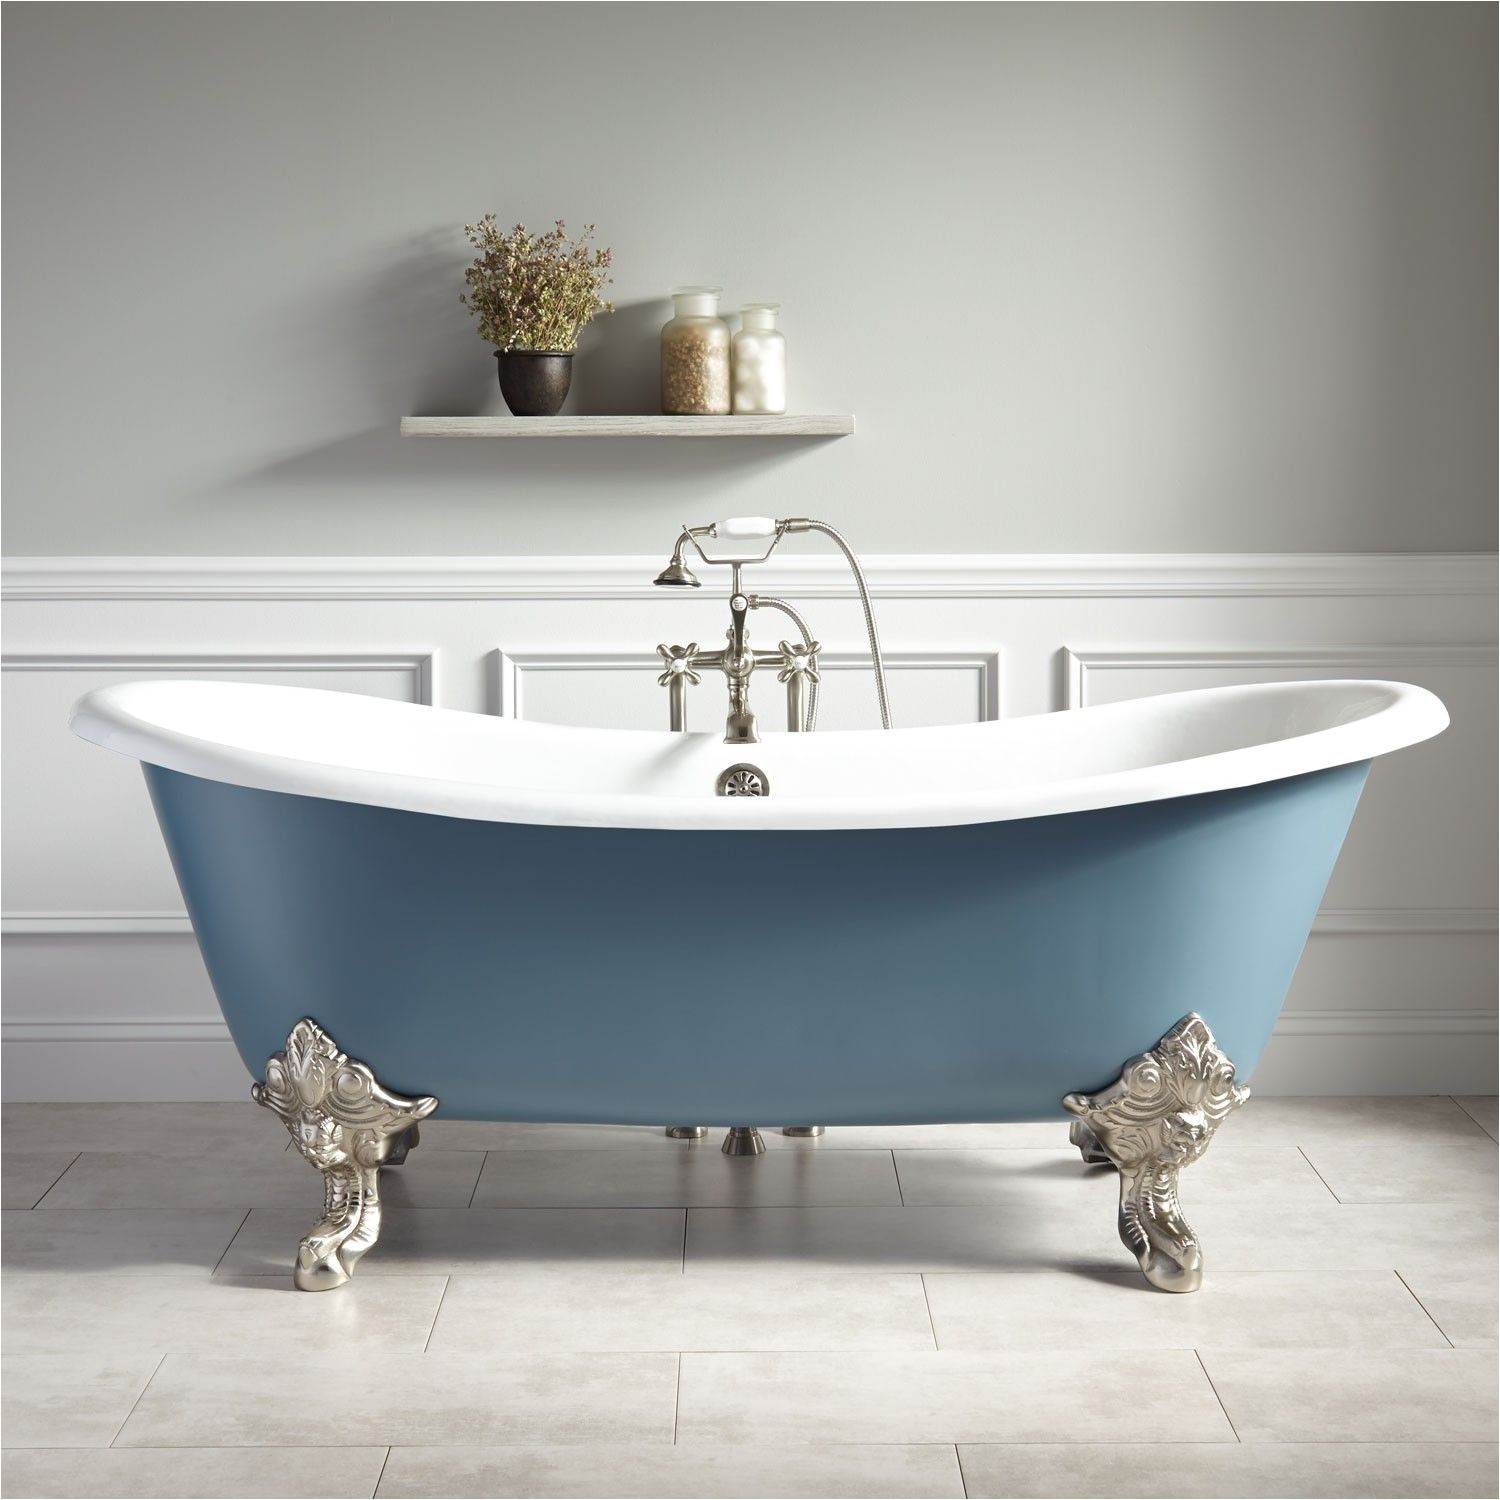 Clawfoot Tub Small Bathroom Design 72 Lena Cast Iron Clawfoot Tub Monarch Imperial Feet Slate Blue